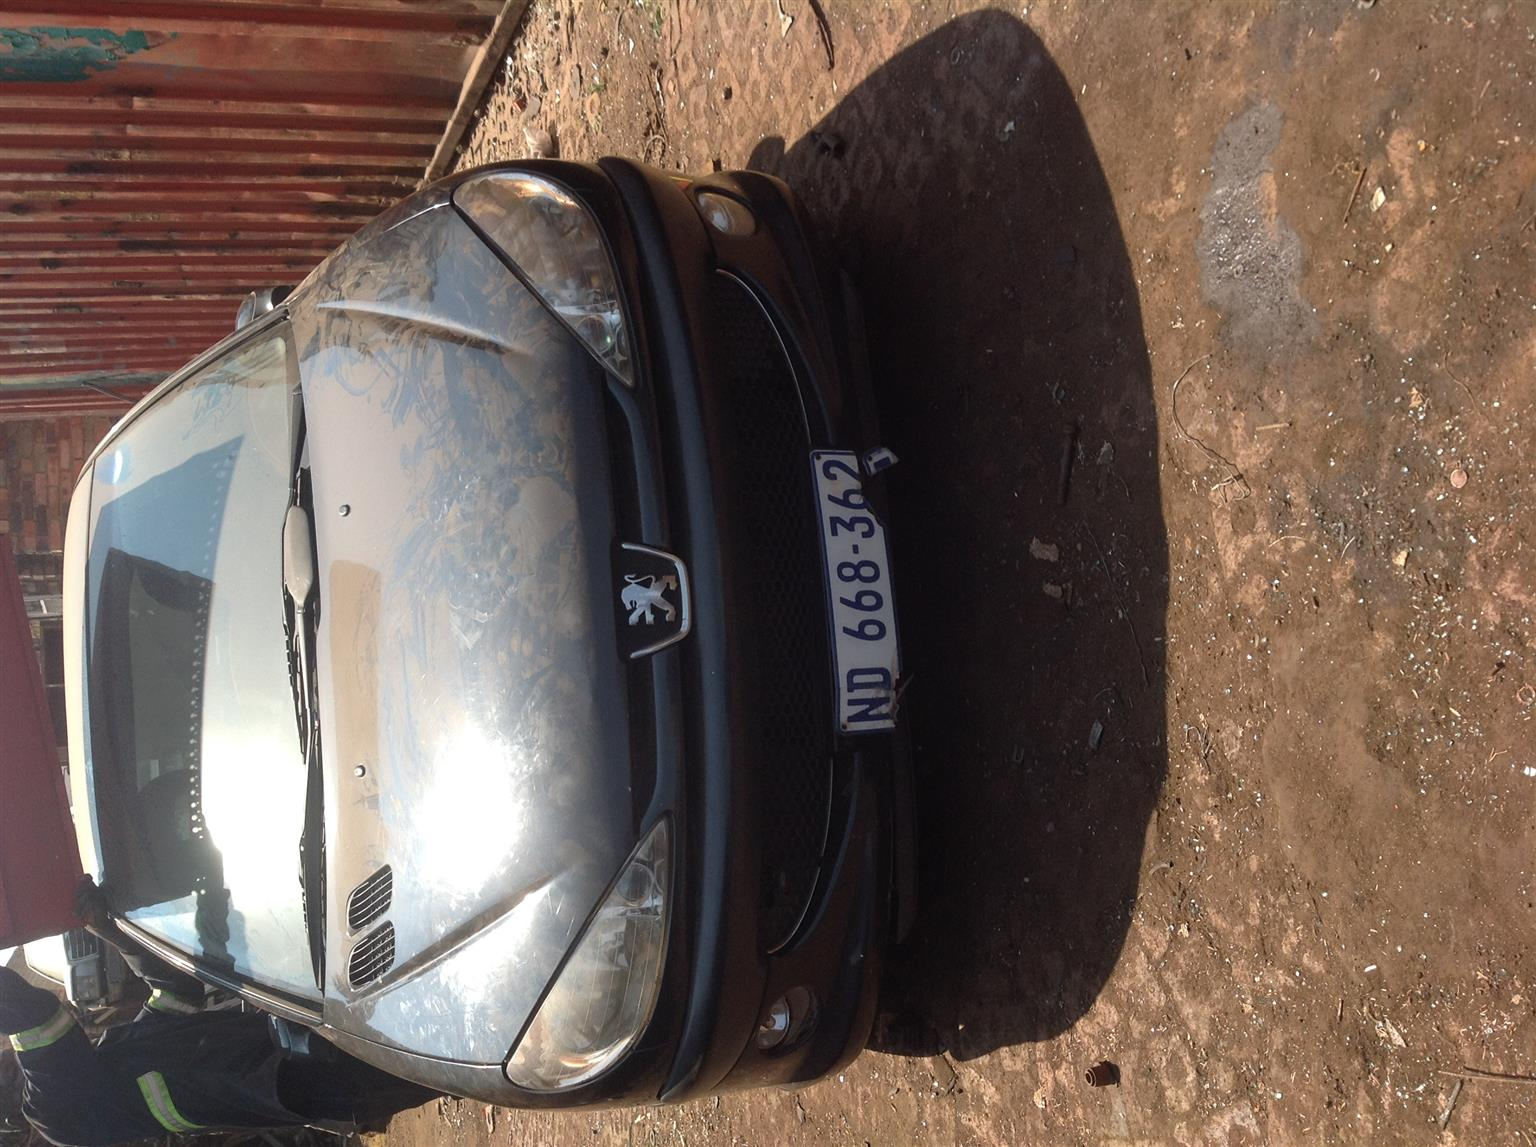 Stripping Peugeot 206 2007 for Spares